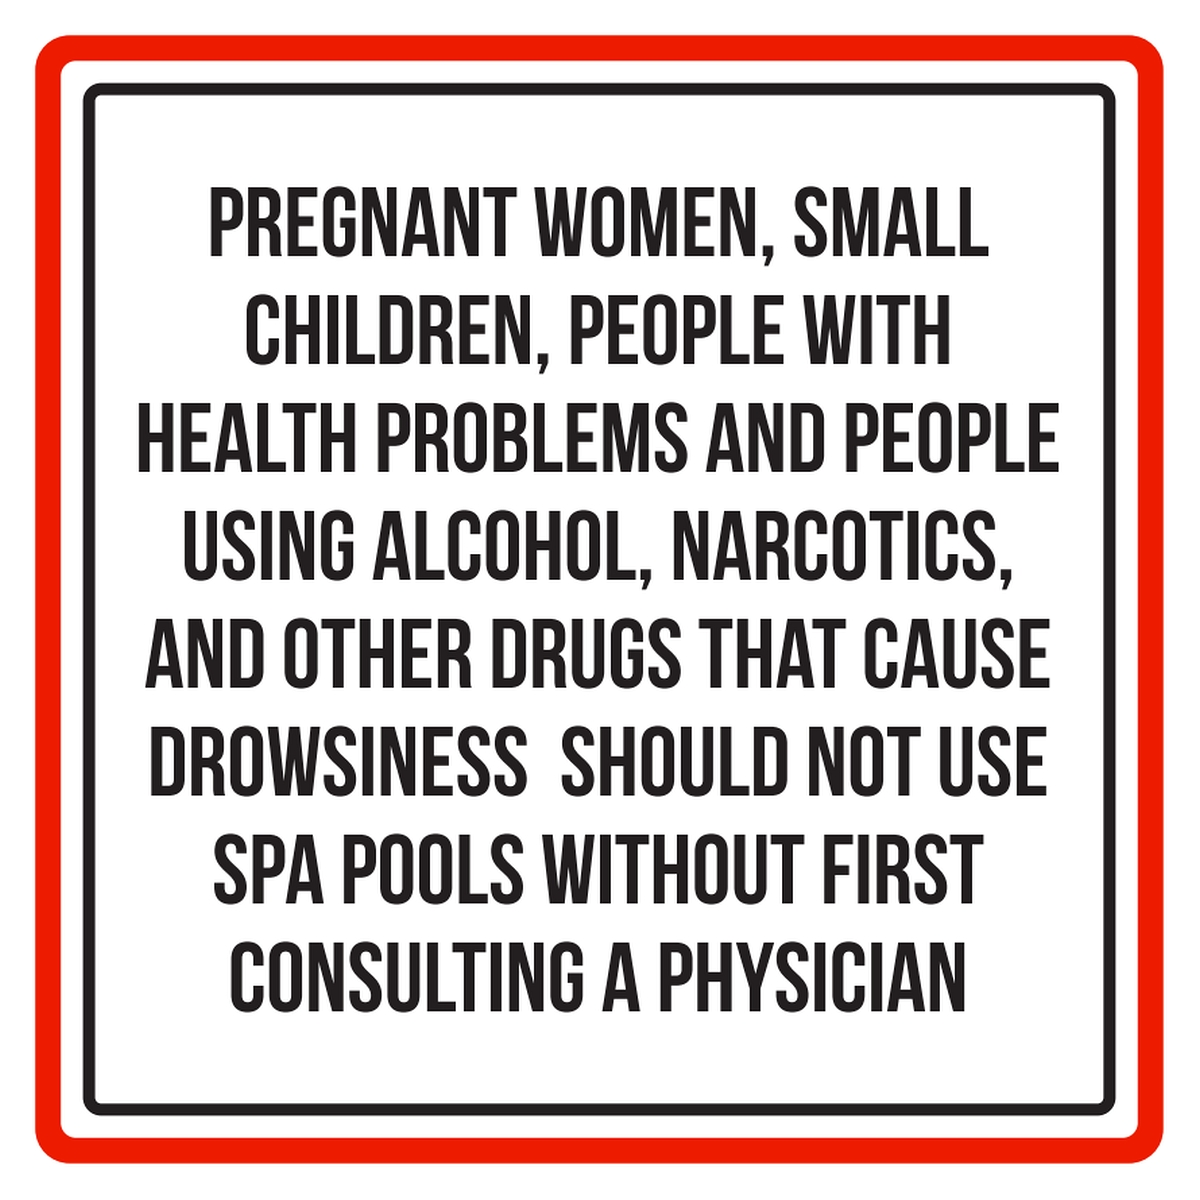 Pregnant Women, Small Children, People With Health Problems Swimming Pool Spa Warning Sign - 9x9